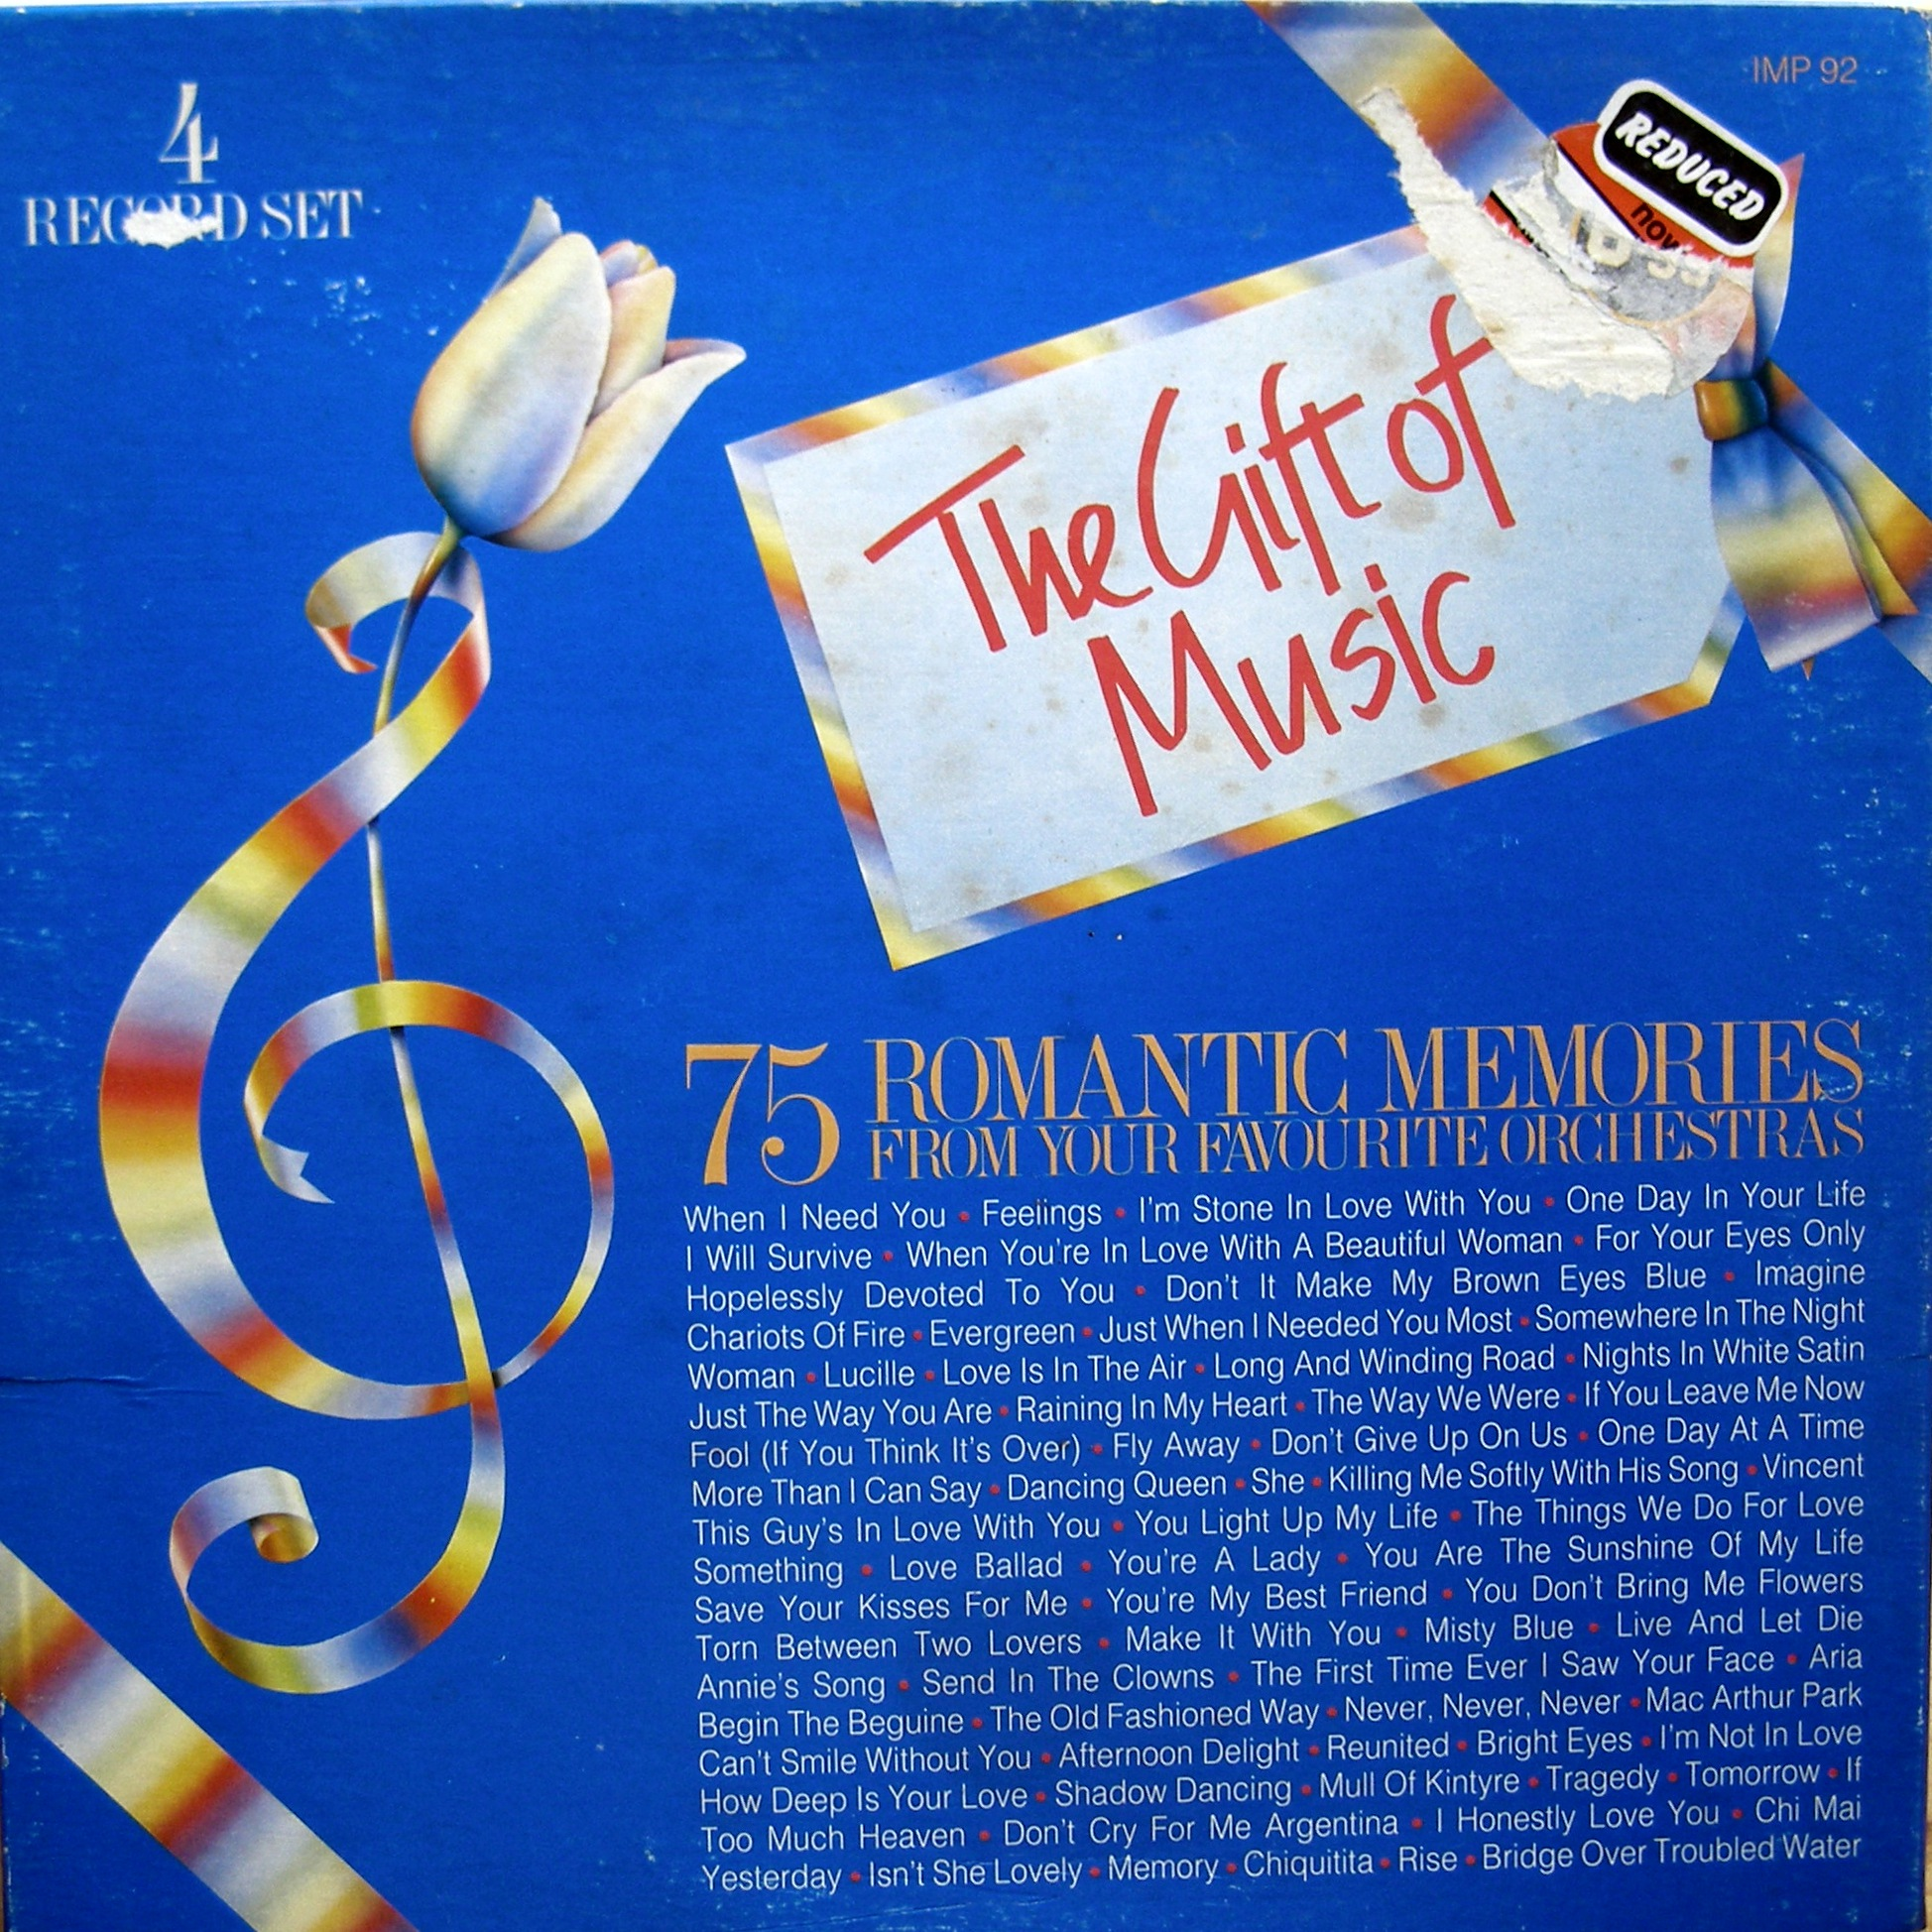 4LP BOX - The Gift Of Music: 75 Romantic Memories From Your Favourite Orchestras